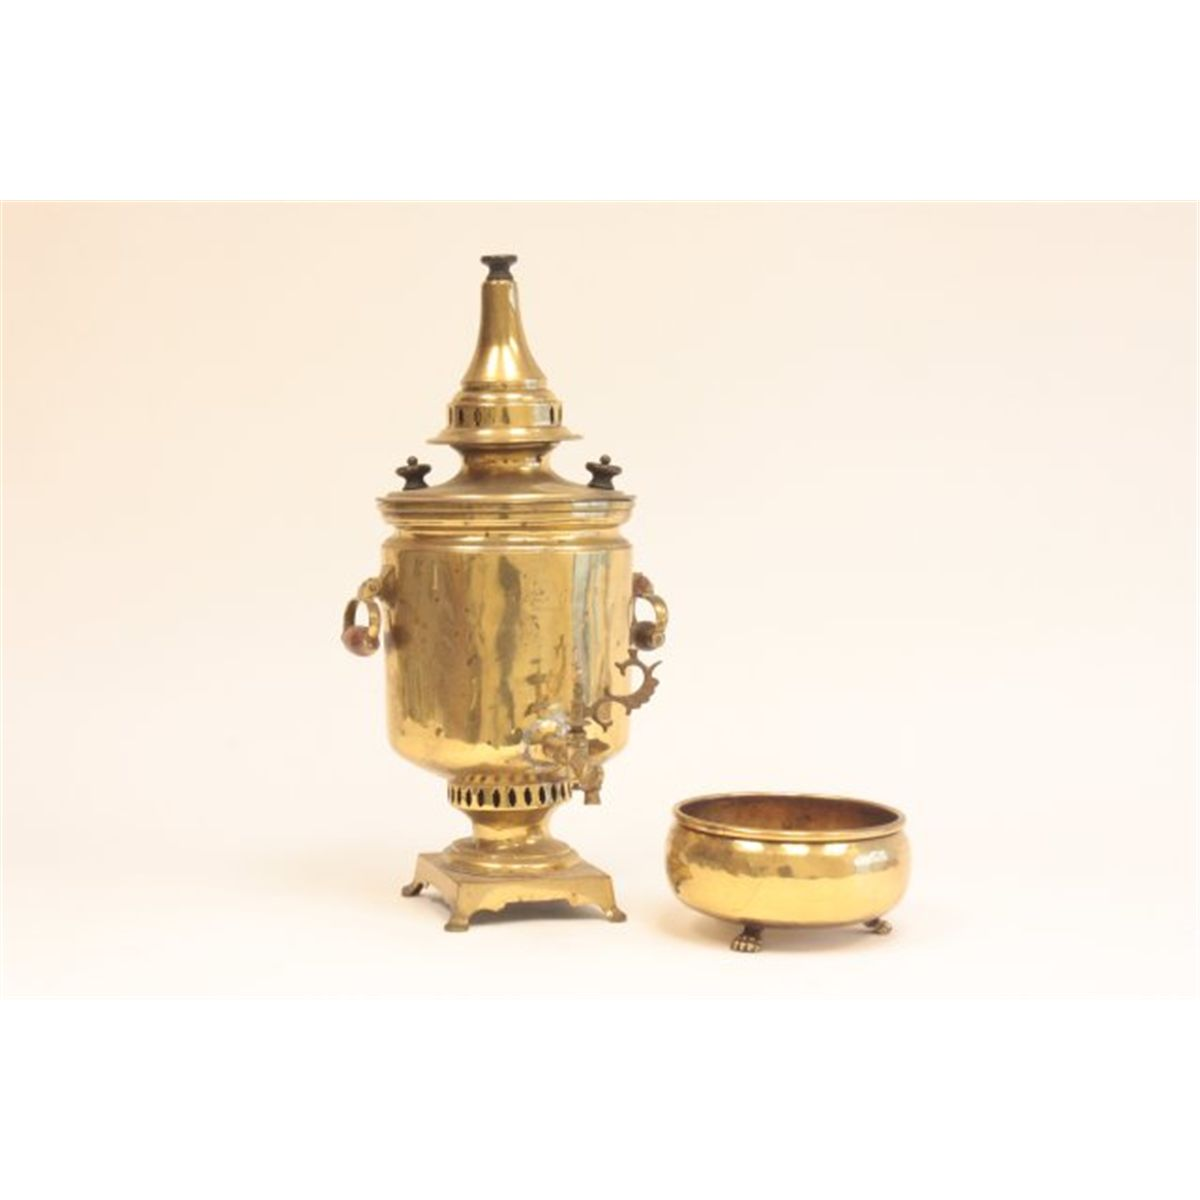 Brass Russian samovar with claw footed waste bowl